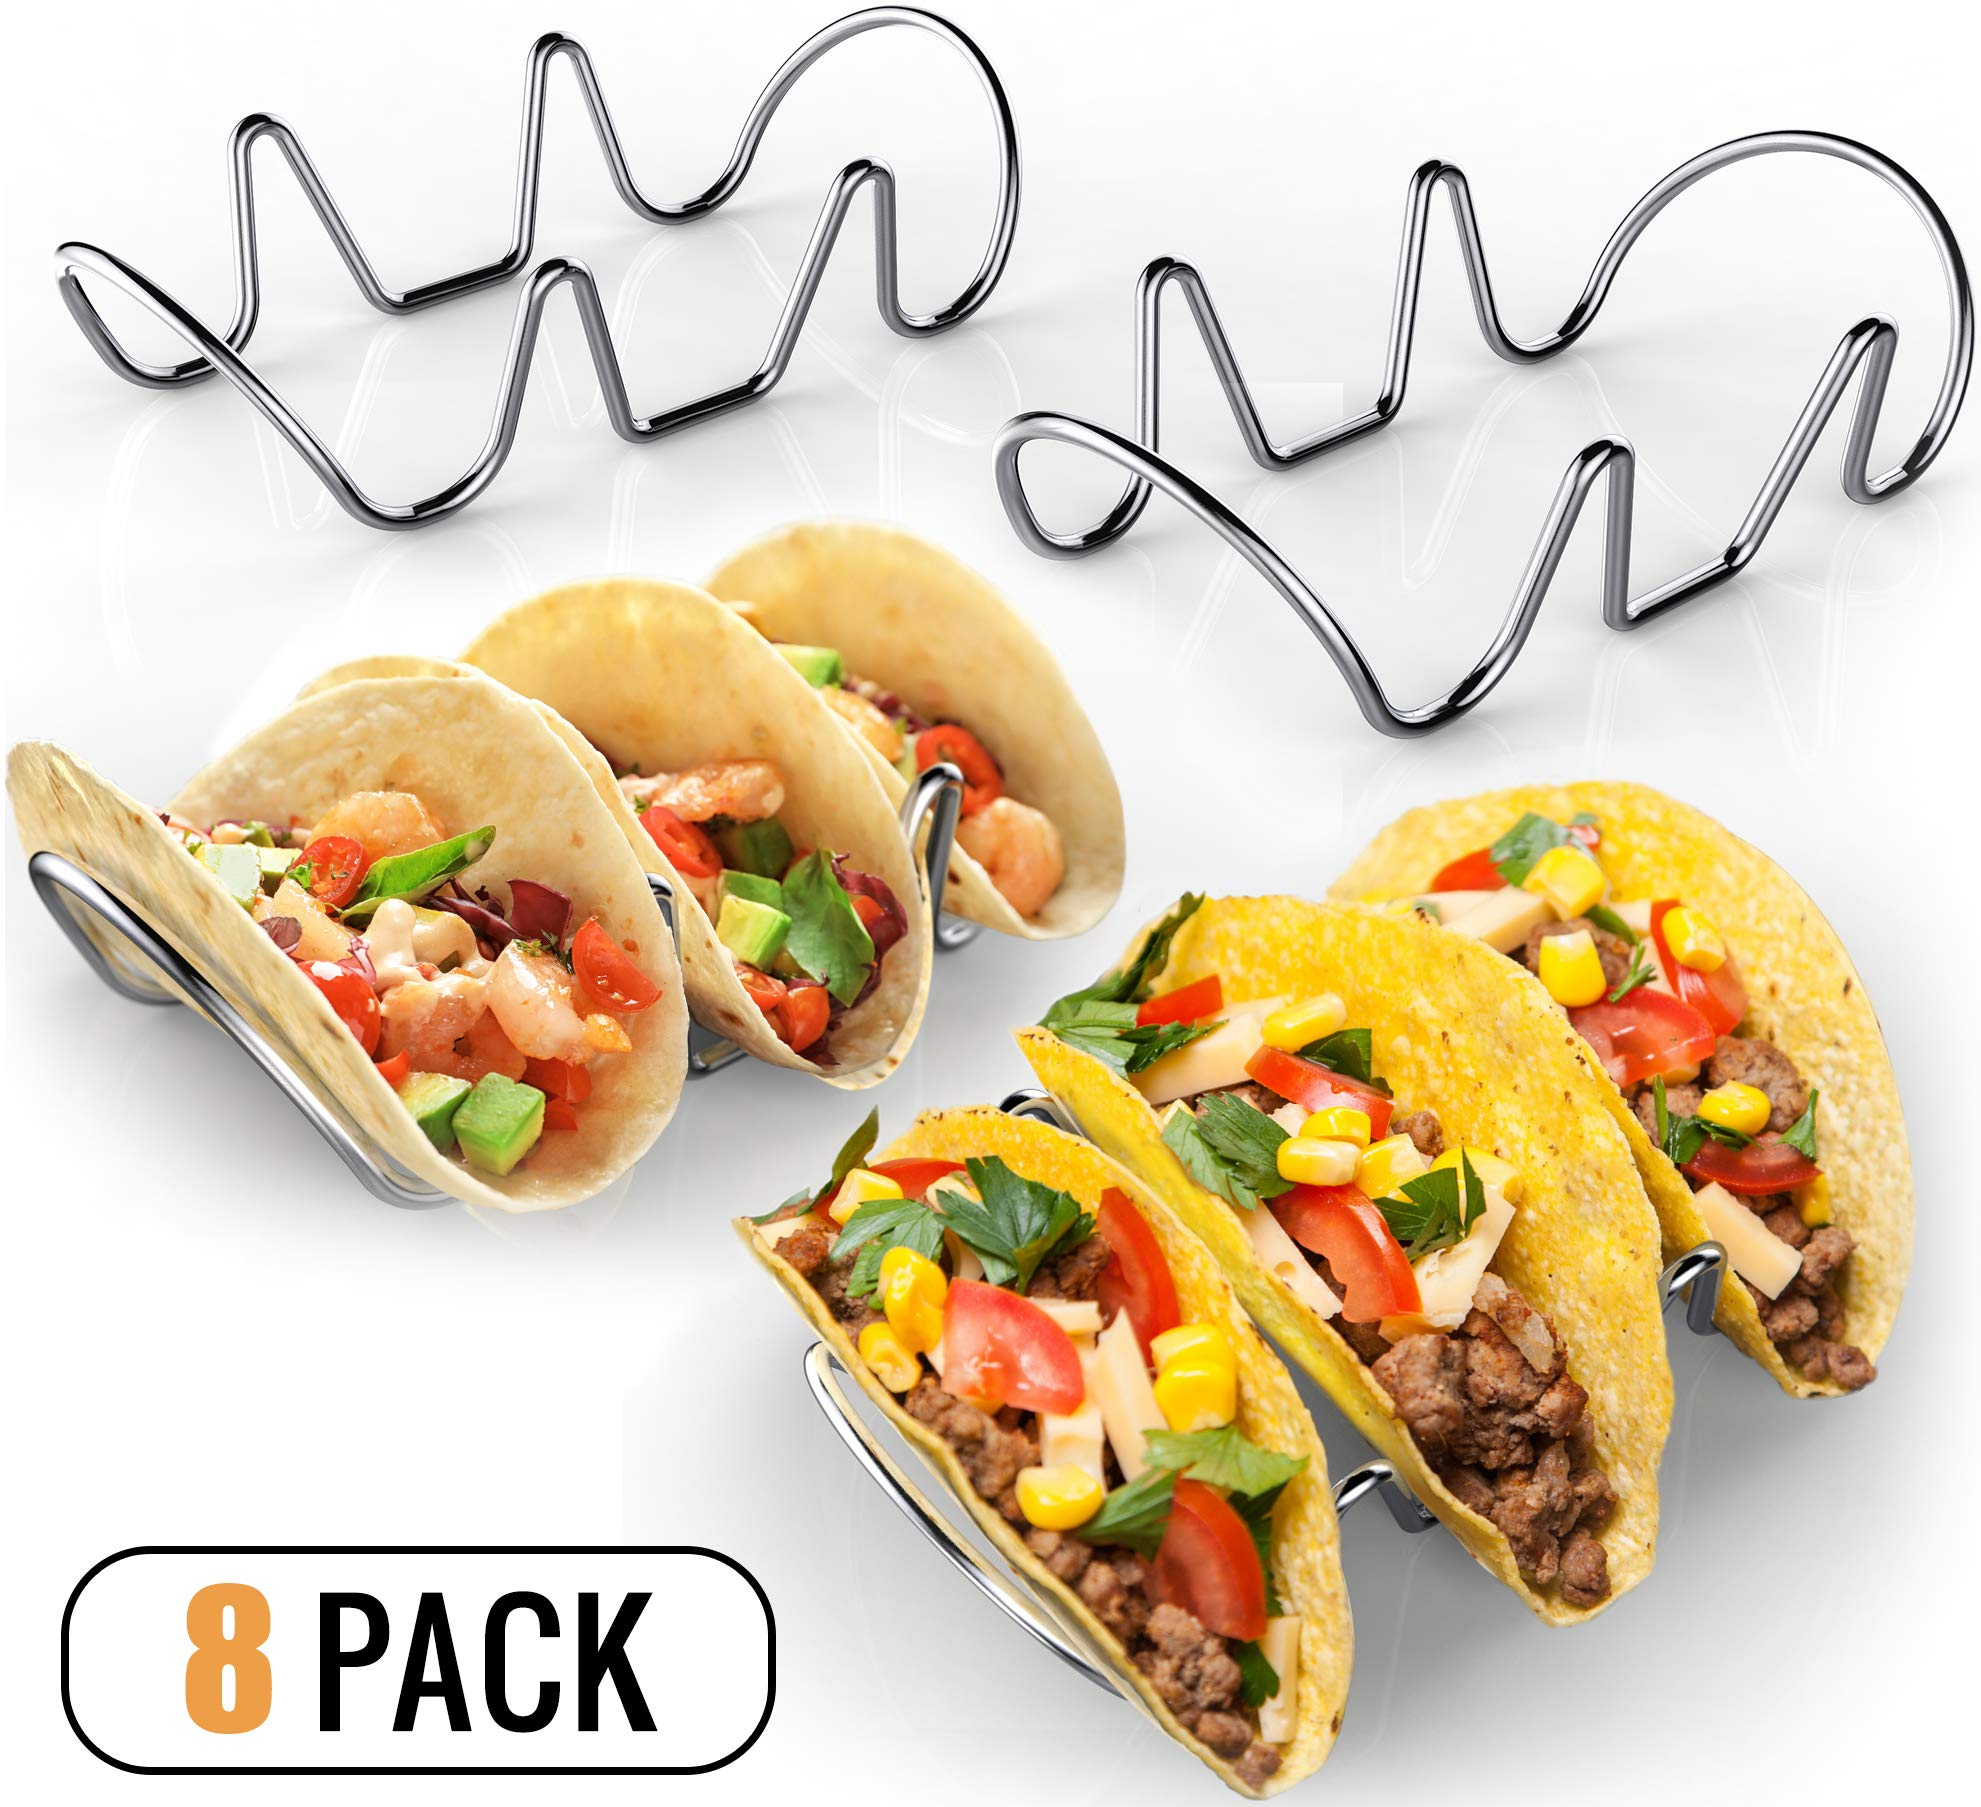 Premium Taco Holders (8 Pack) Stainless Steel Taco Stands (Holds 24 Tacos) - Oven & Dishwasher Safe Stackable Trays - Racks Hold Soft & Hard Shell Tacos